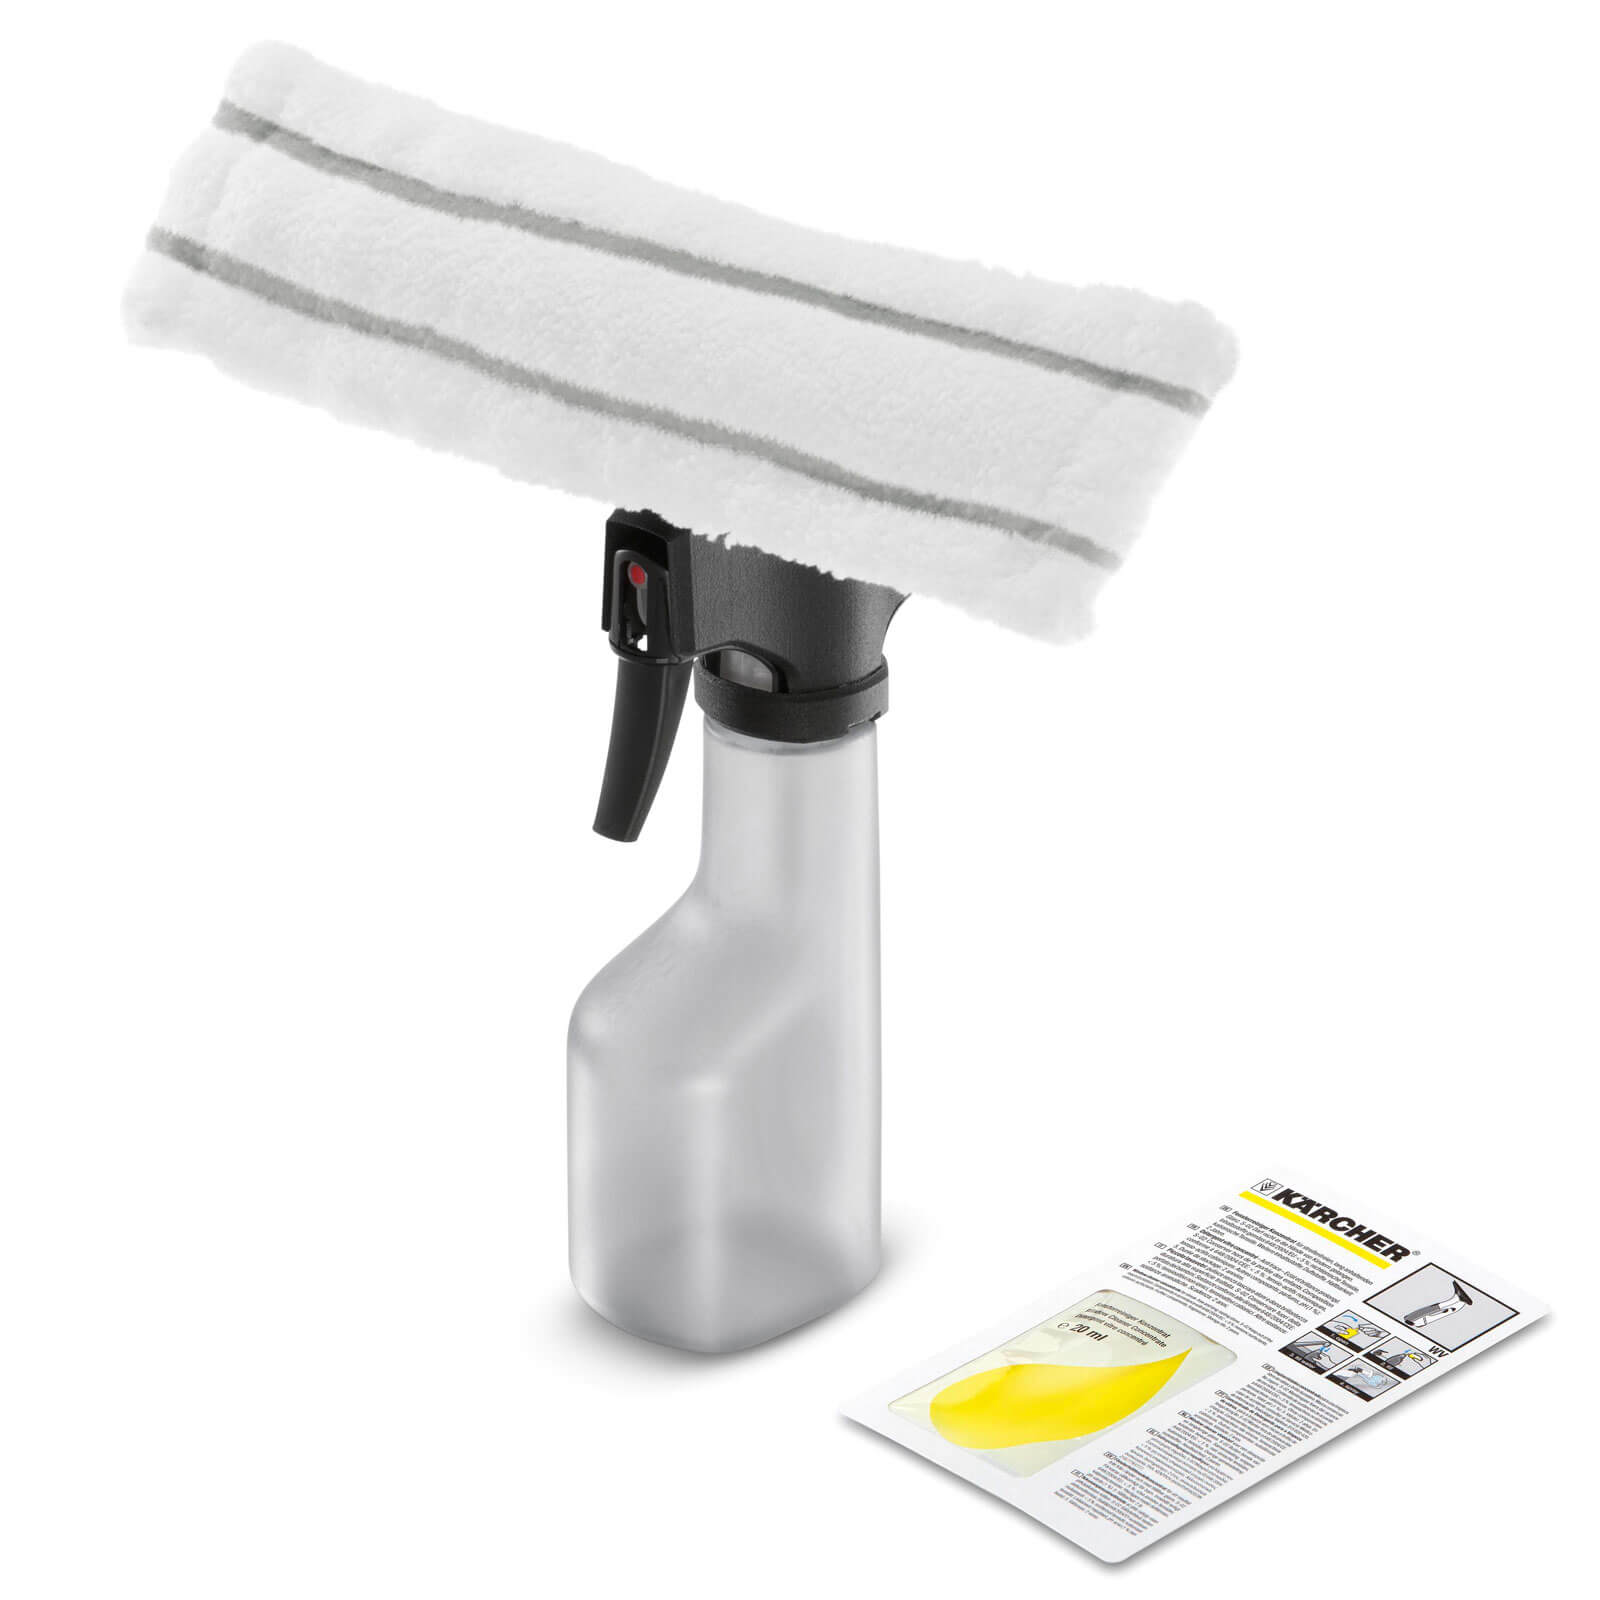 Karcher Spray Bottle & Microfibre Pad Kit for Karcher Window Vacs